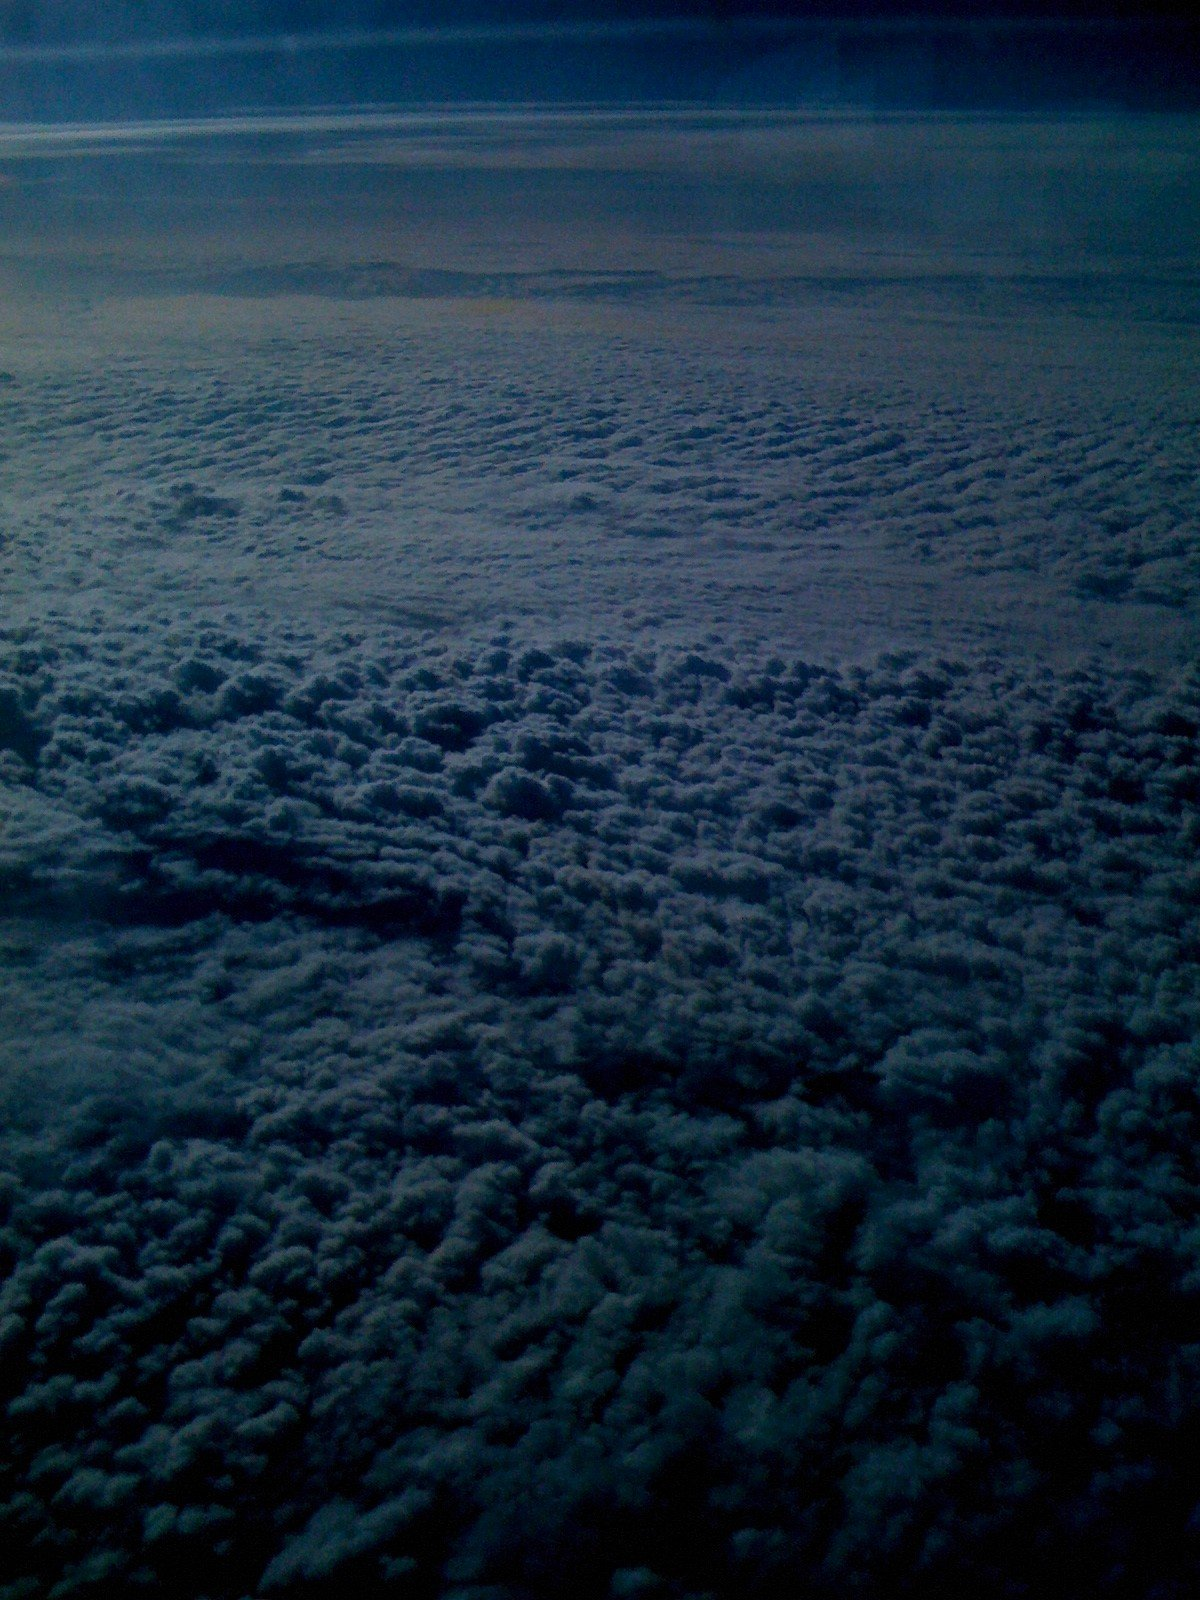 the clouds are inside the flight